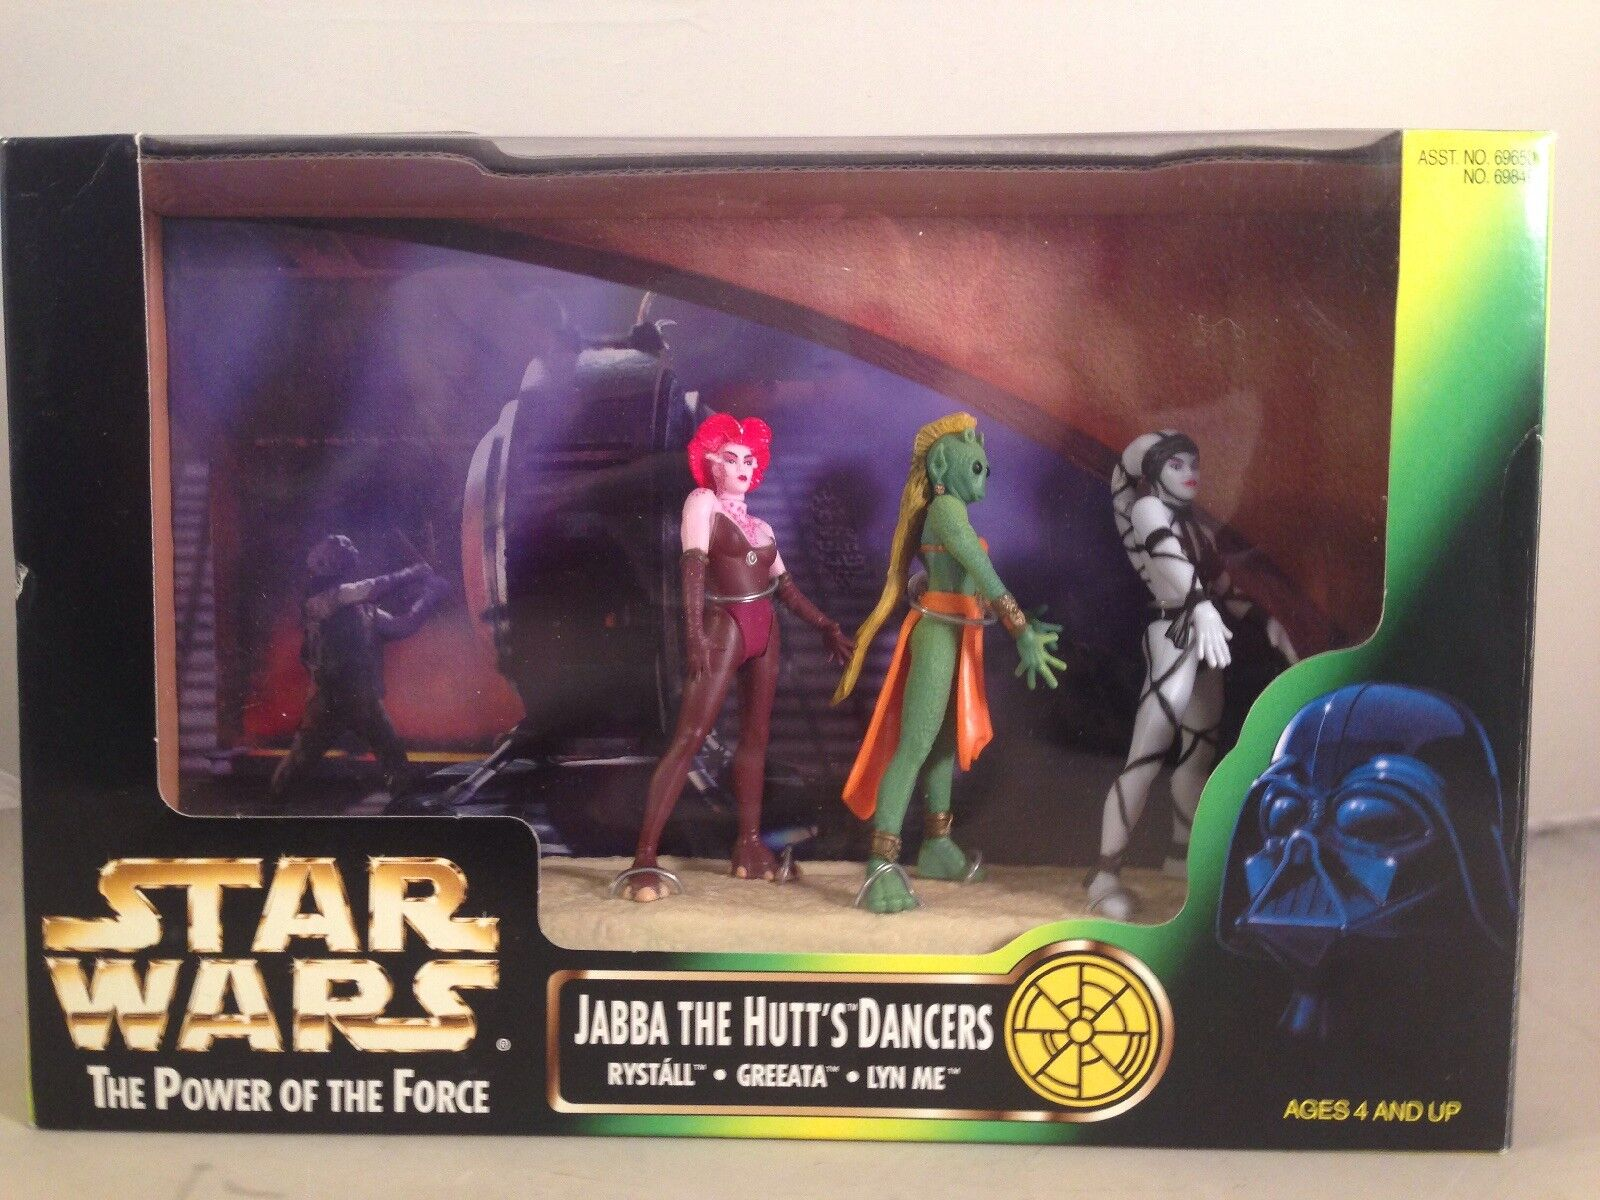 STAR WARS THE POWER OF THE FORCE JABBA'S THE HUTT'S DANCERS FIGURE SET MIB 1995